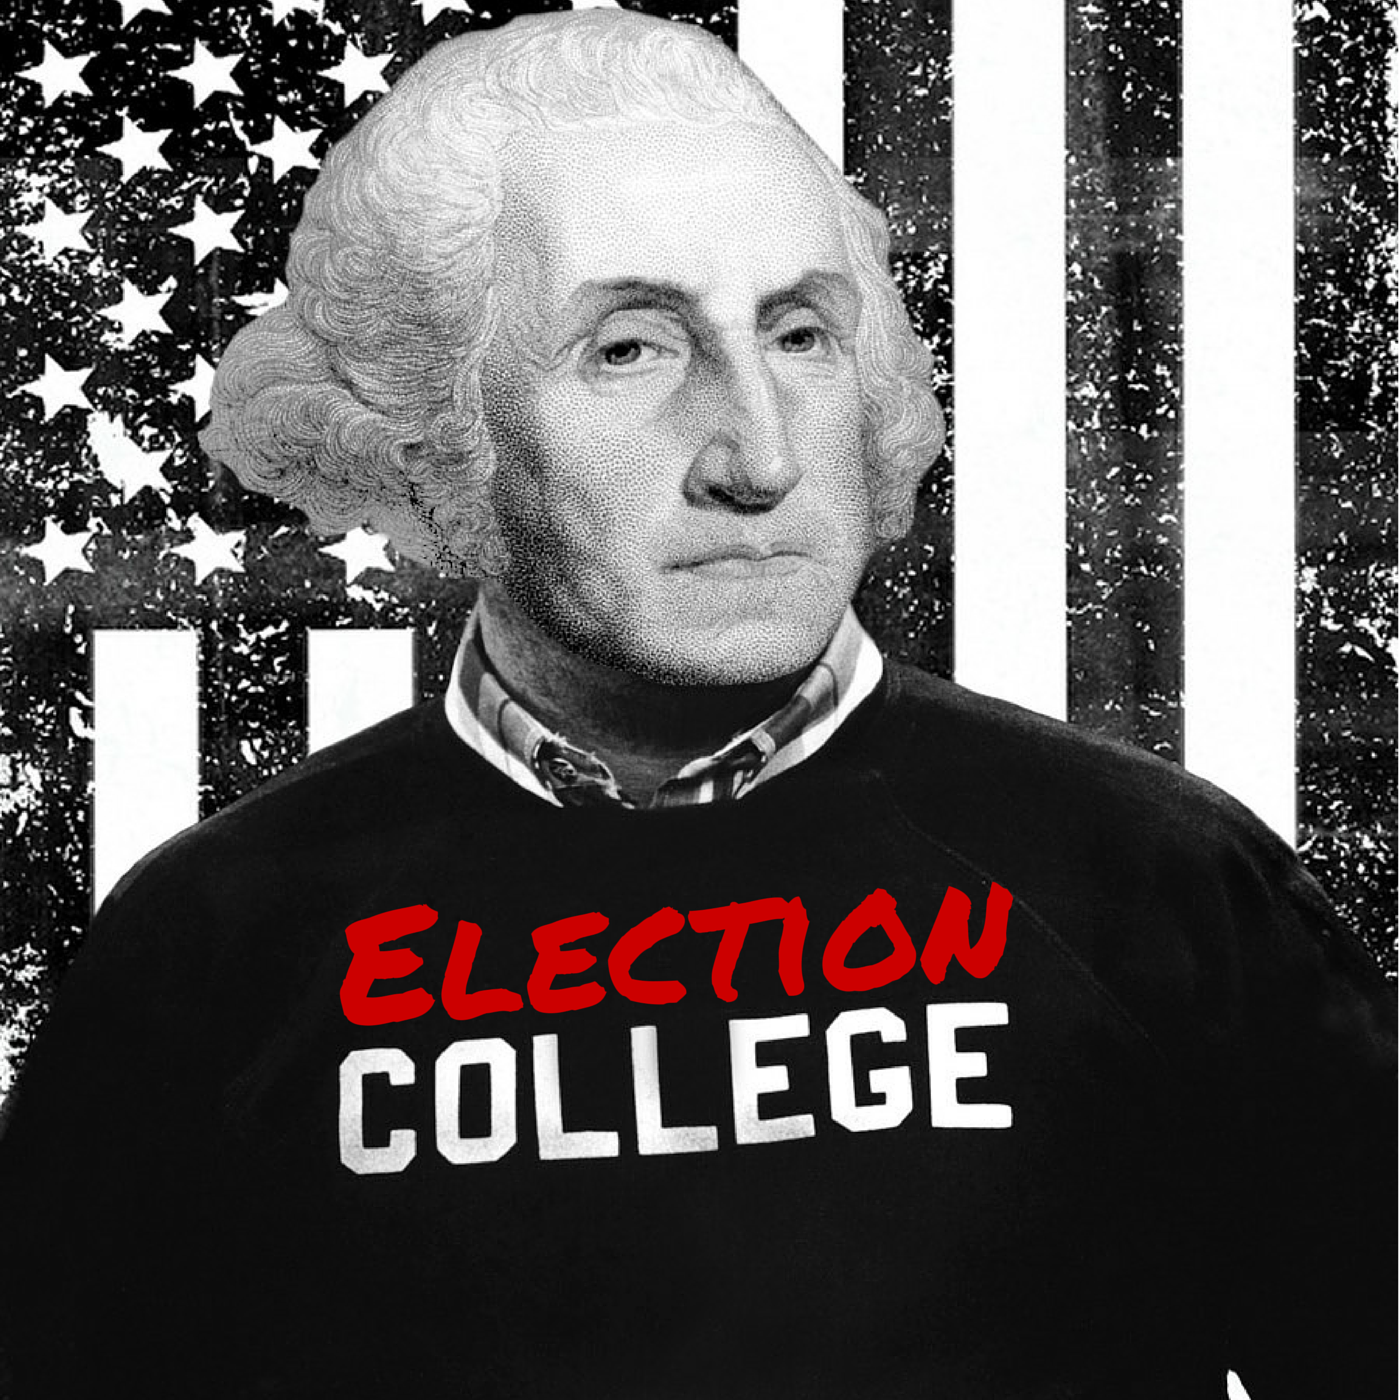 The 22nd Amendment | Episode #056 | Election College: United States Presidential Election History